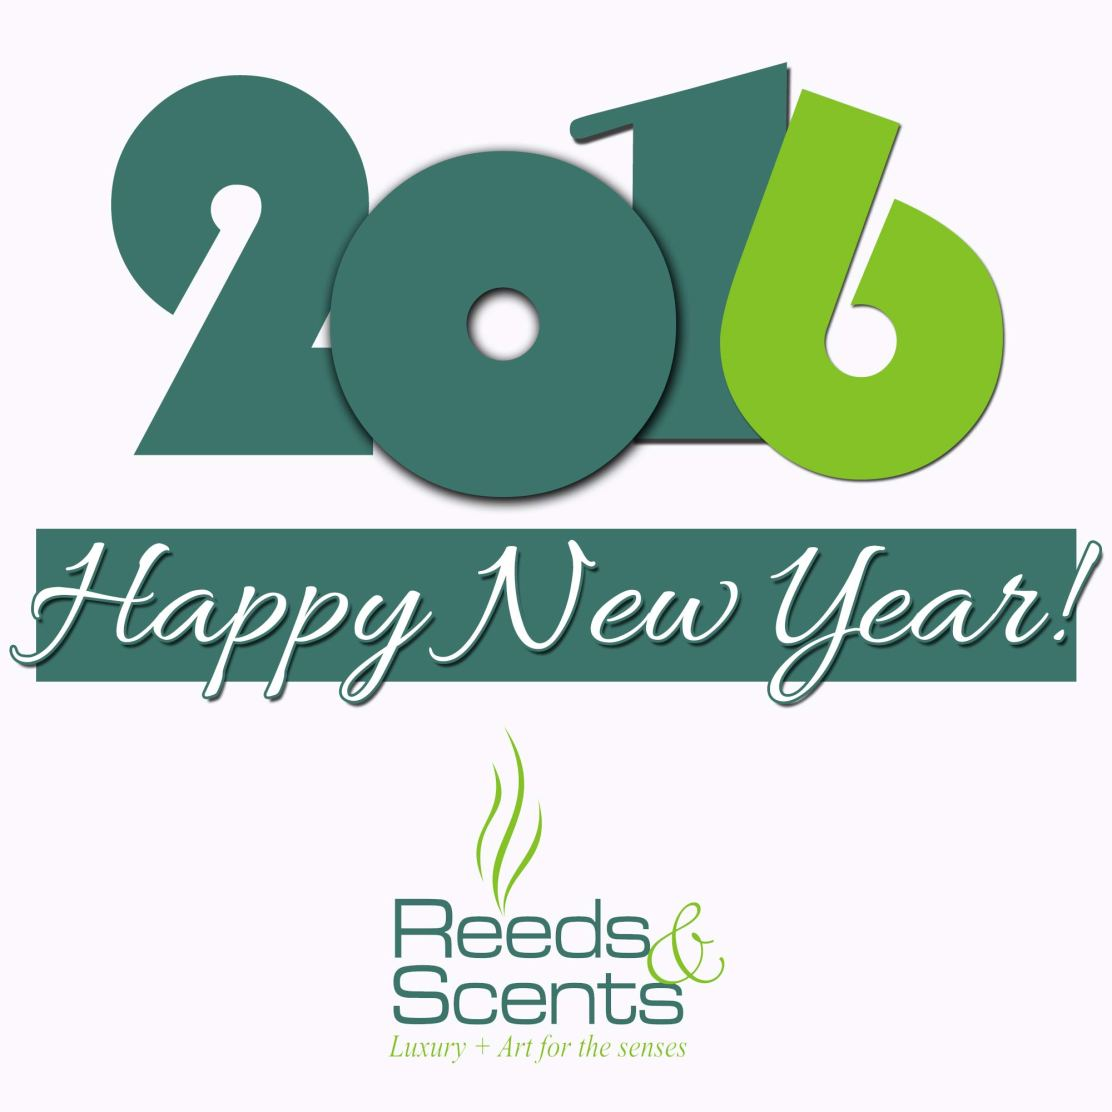 Happy-New-Year-Reeds-and-Scents-2016